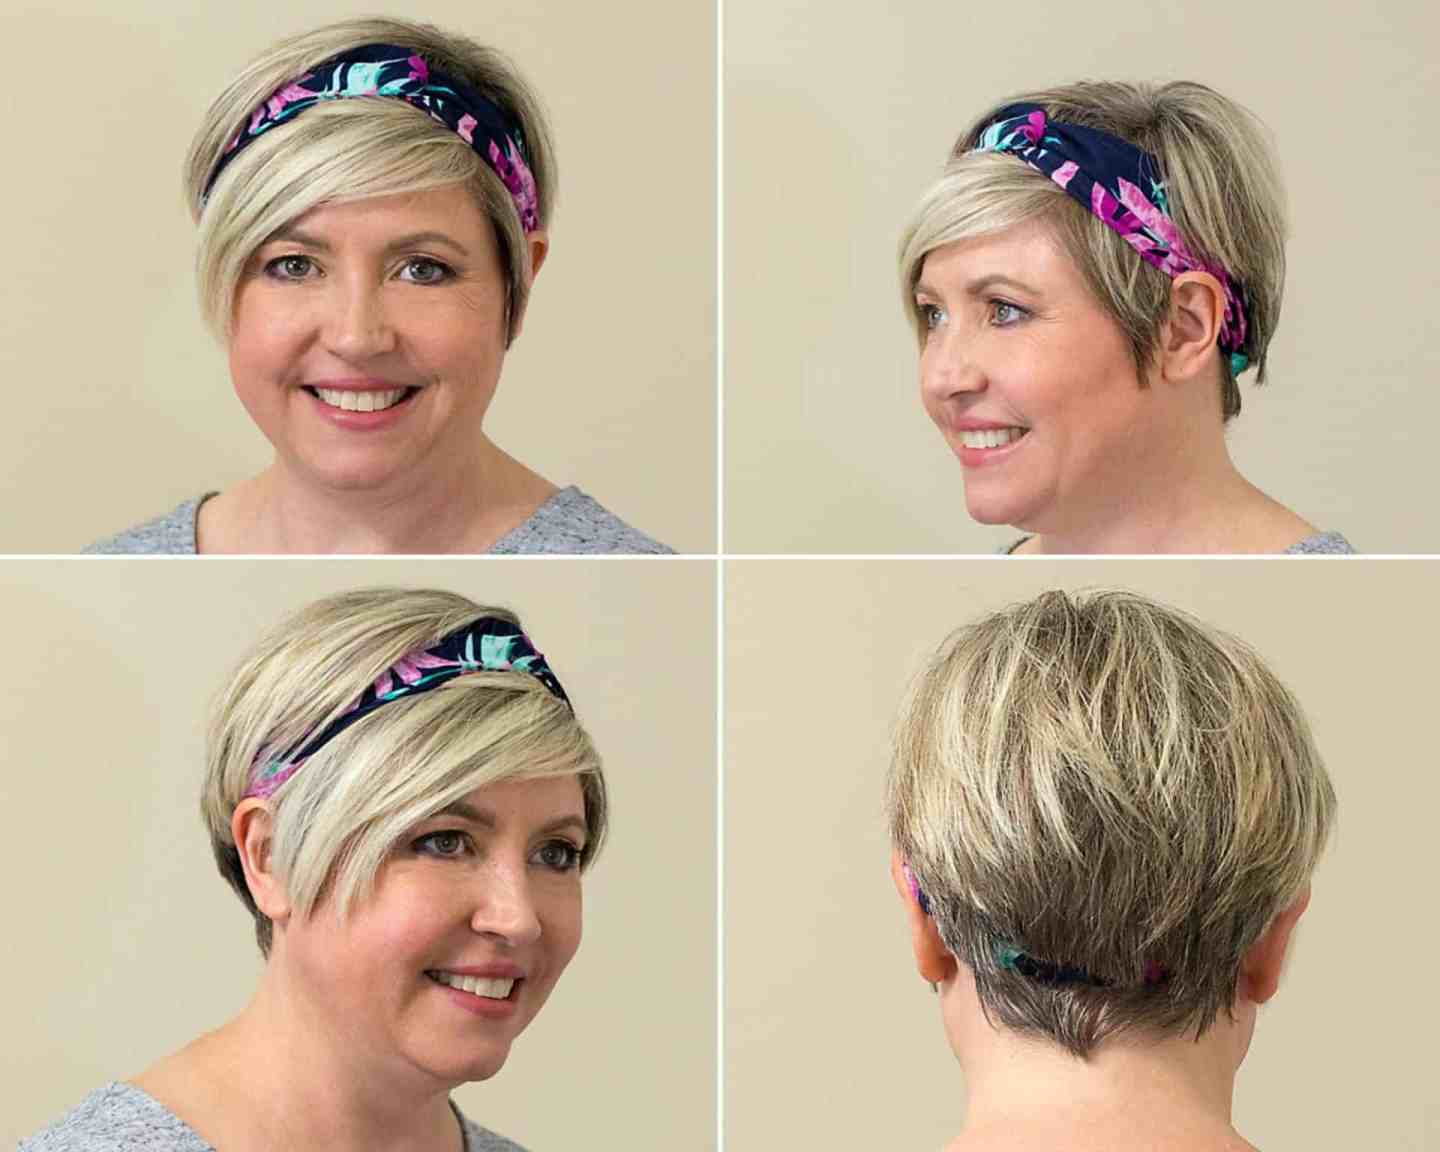 cloth floral headband